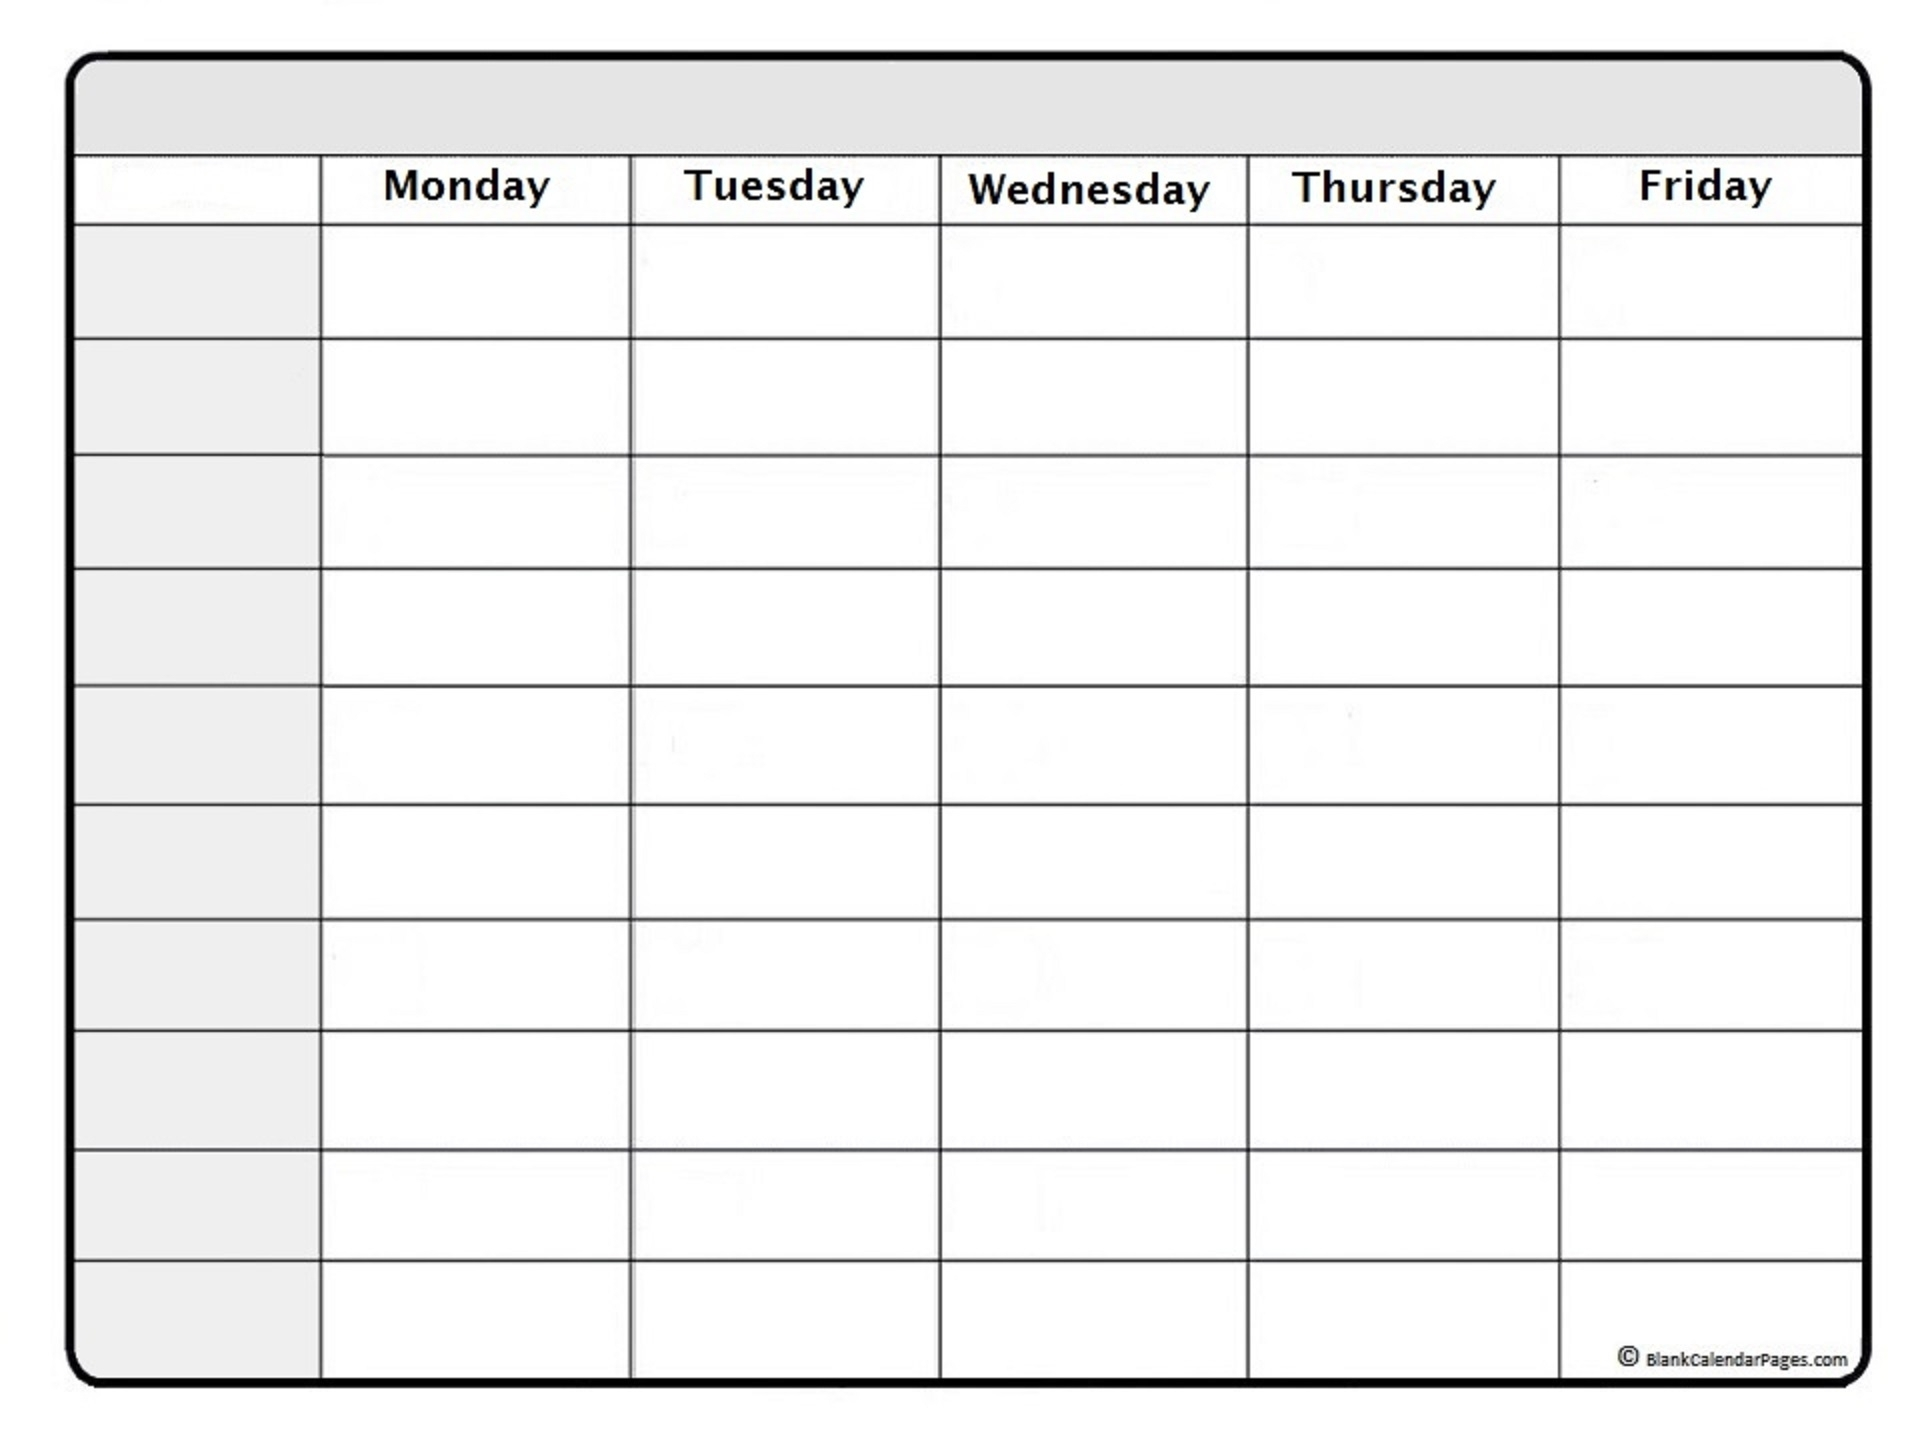 May 2019 Weekly Calendar | May 2019 Weekly Calendar Template throughout July Printable Calendar With Hours